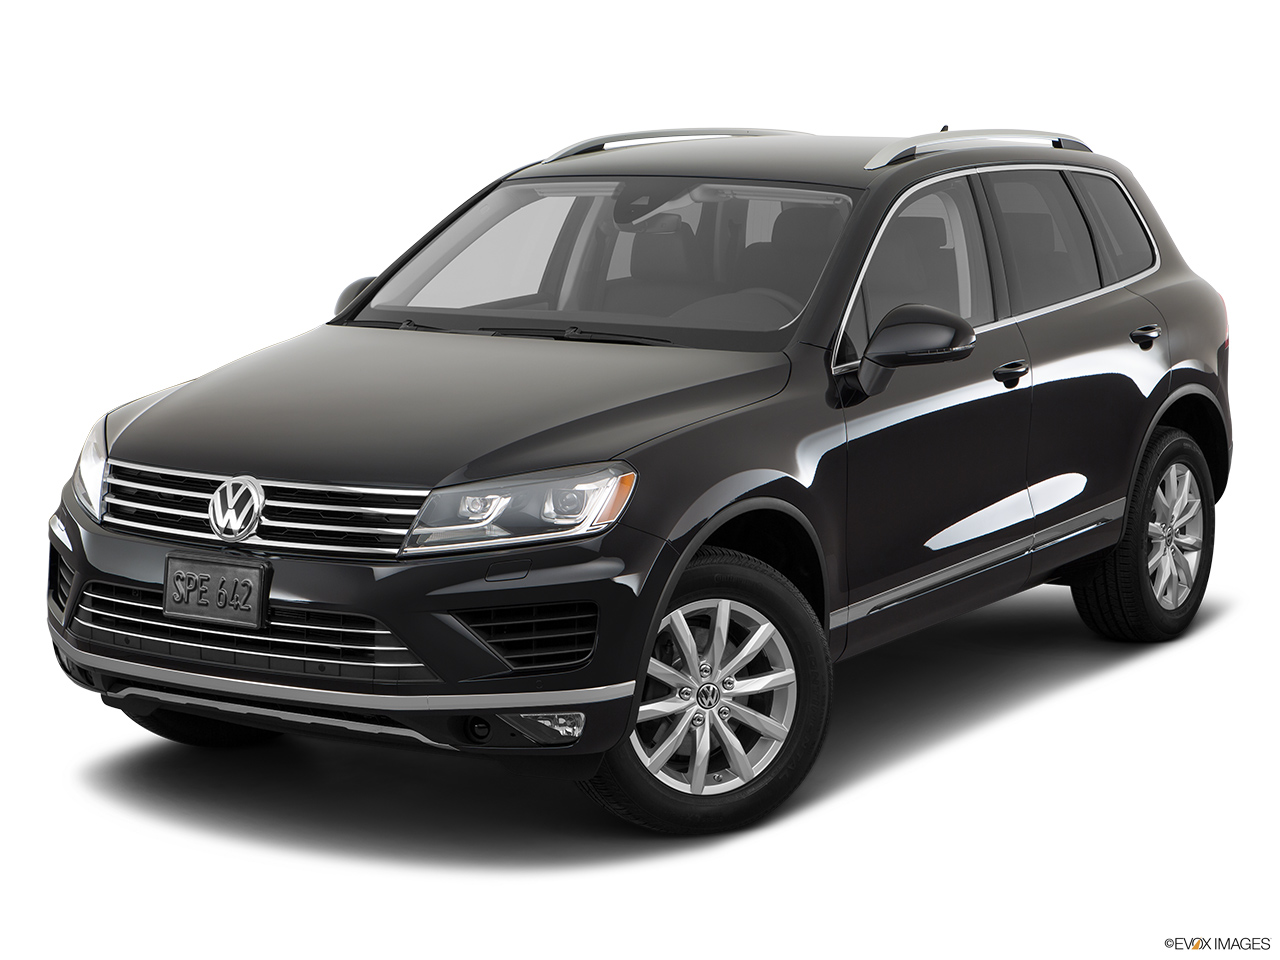 volkswagen touareg 2018 3 6l sel in uae new car prices specs reviews photos yallamotor. Black Bedroom Furniture Sets. Home Design Ideas